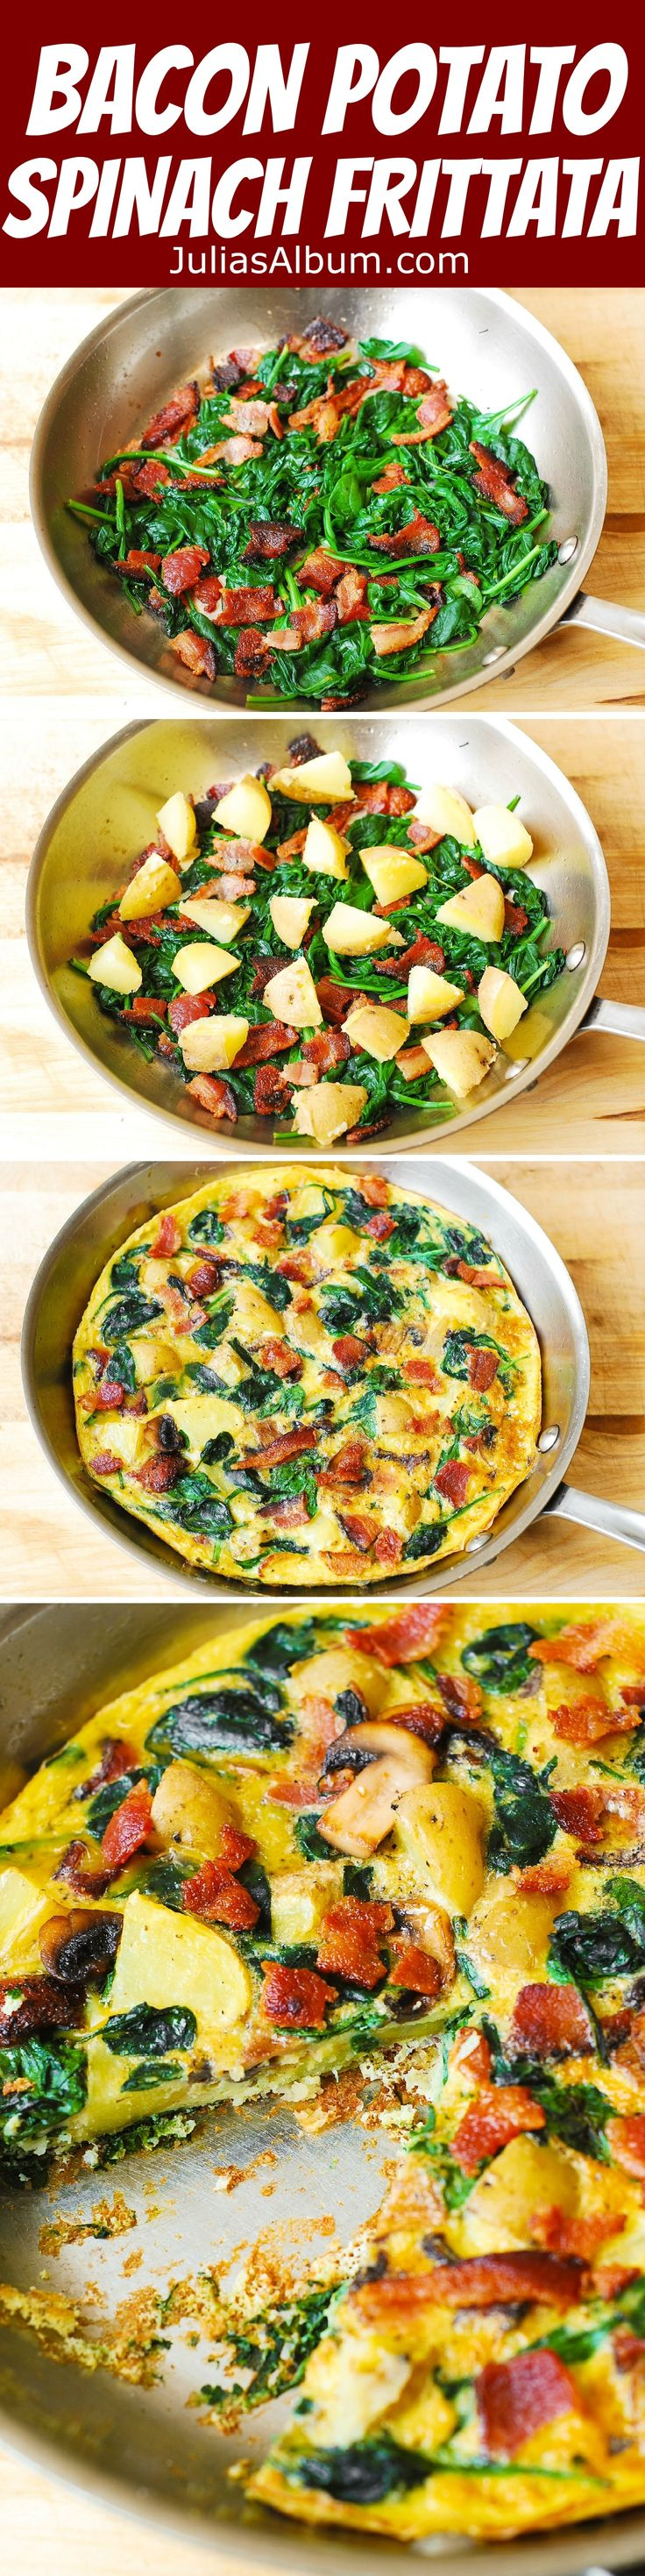 BREAKFAST: Bacon, Potato, and Spinach Frittata. Healthy, gluten free, lots of…